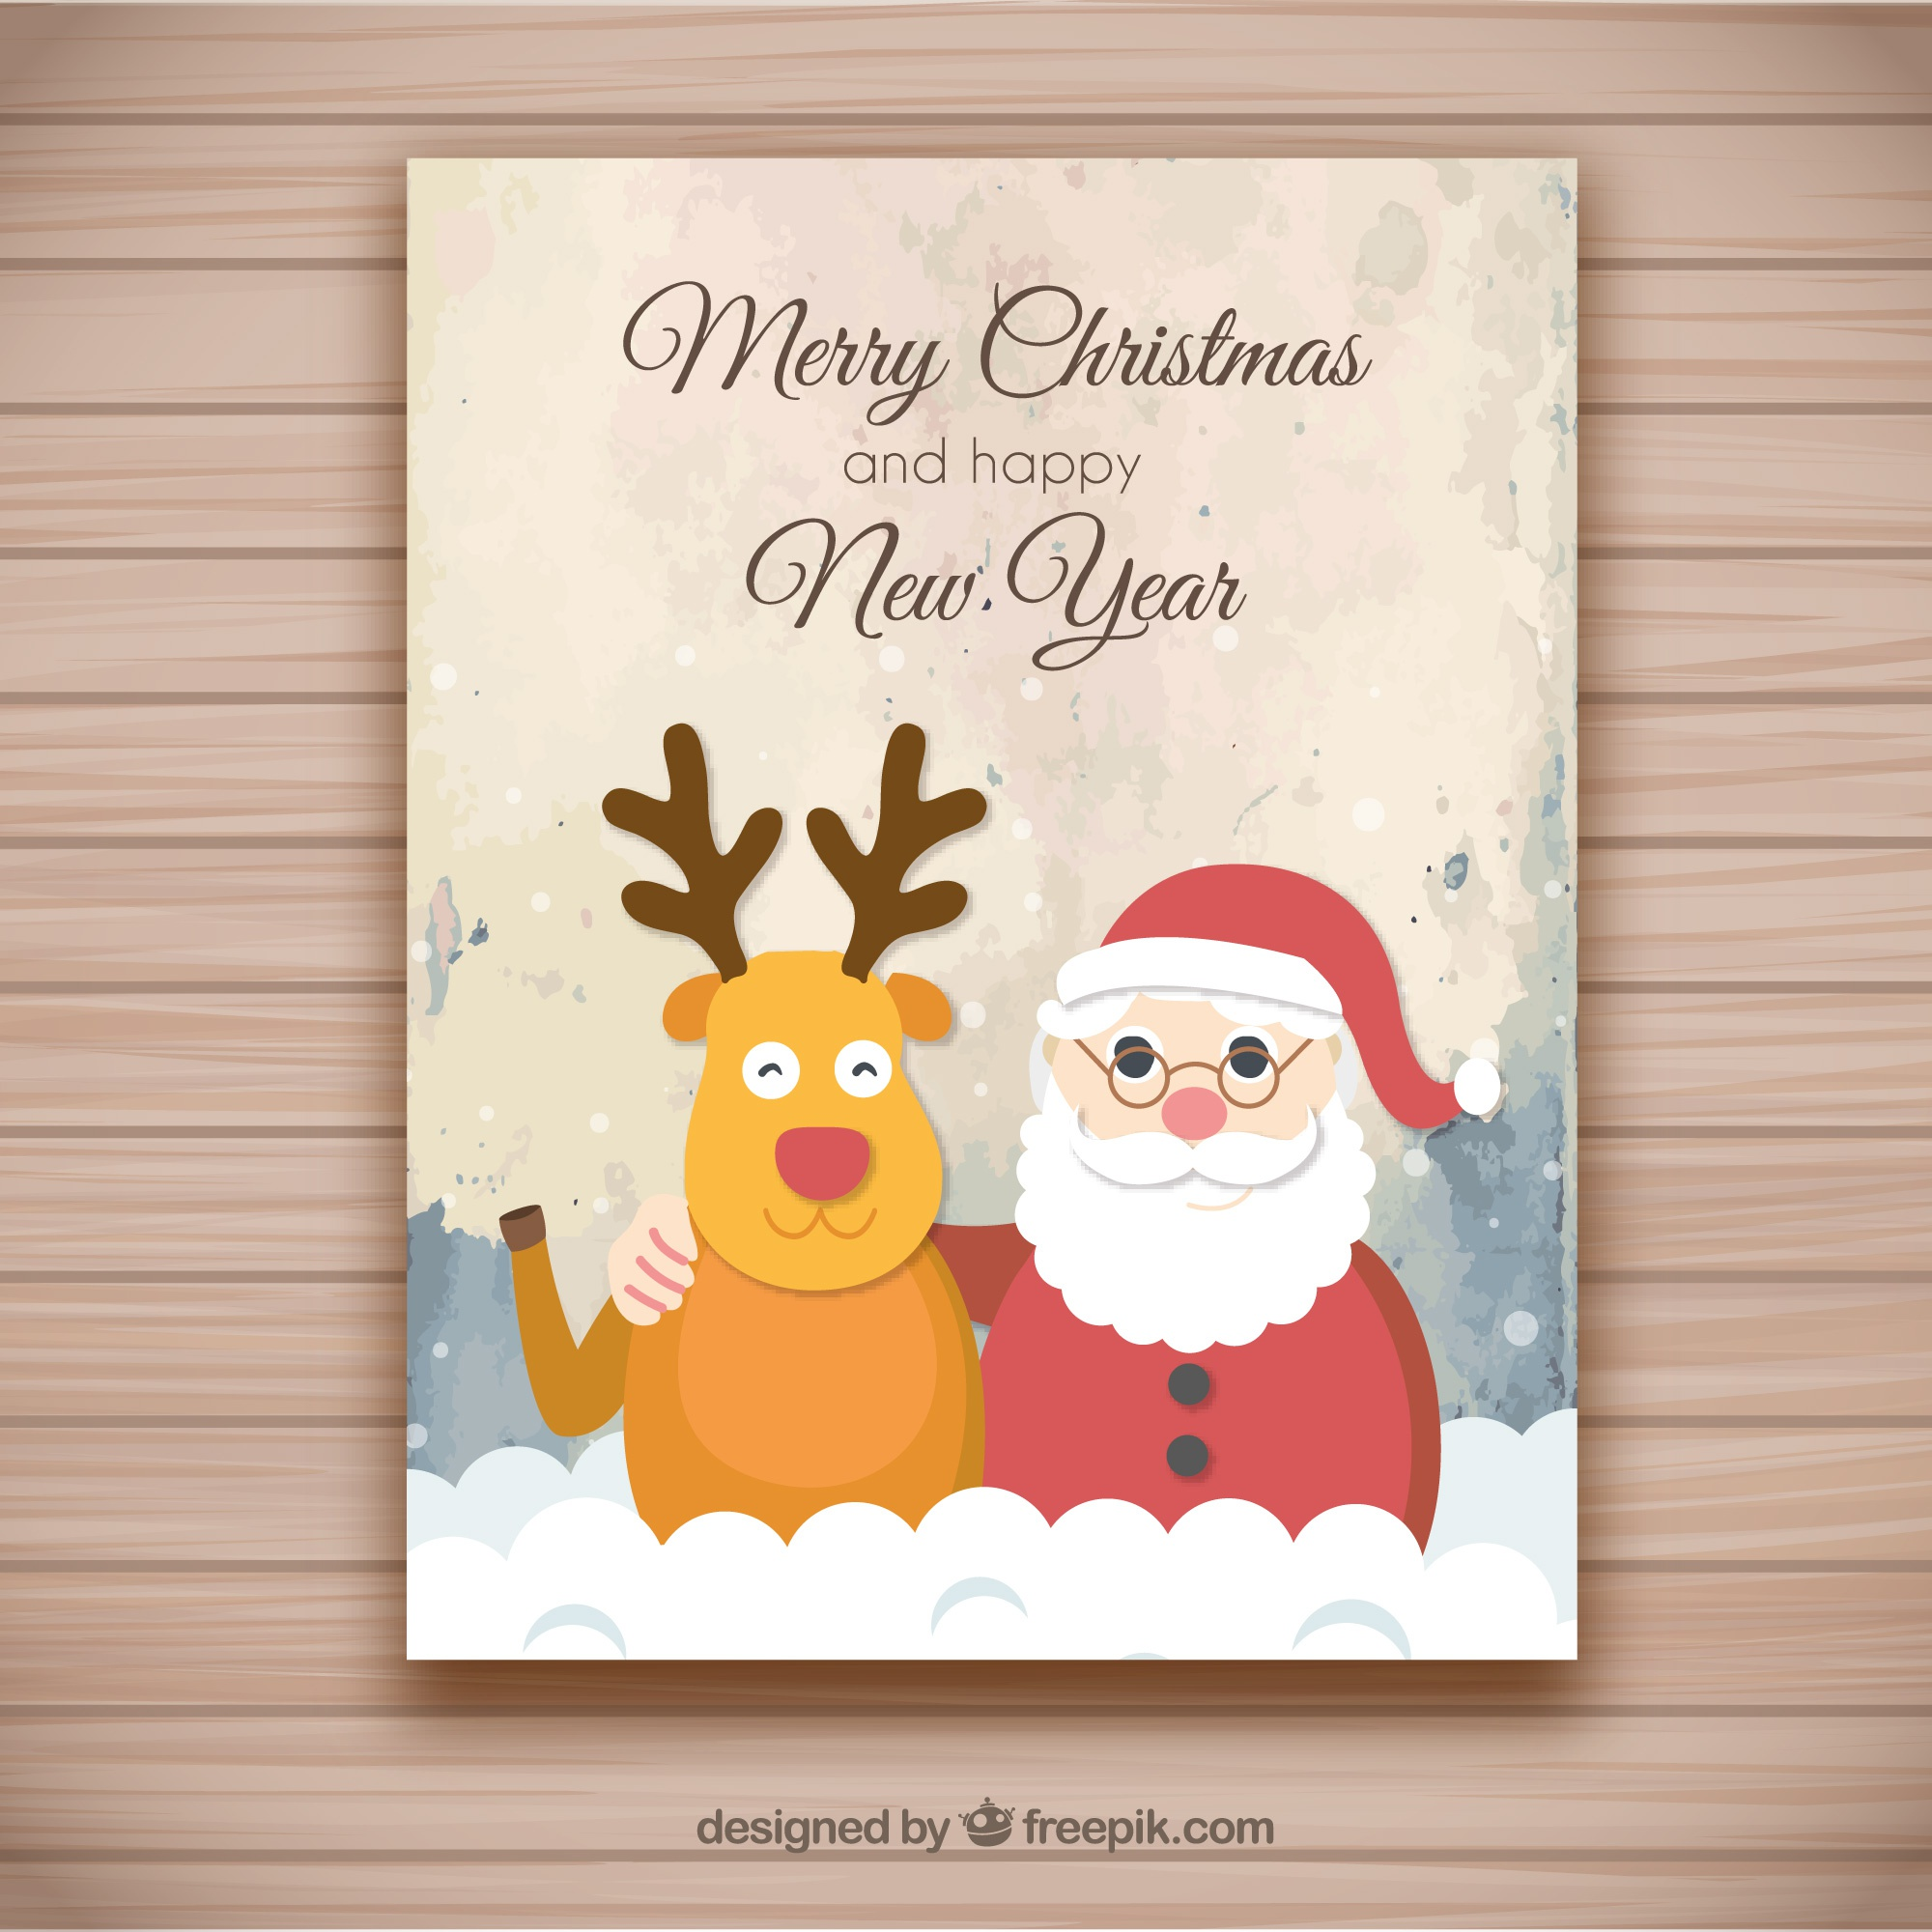 Christmas greeting card with grunge background